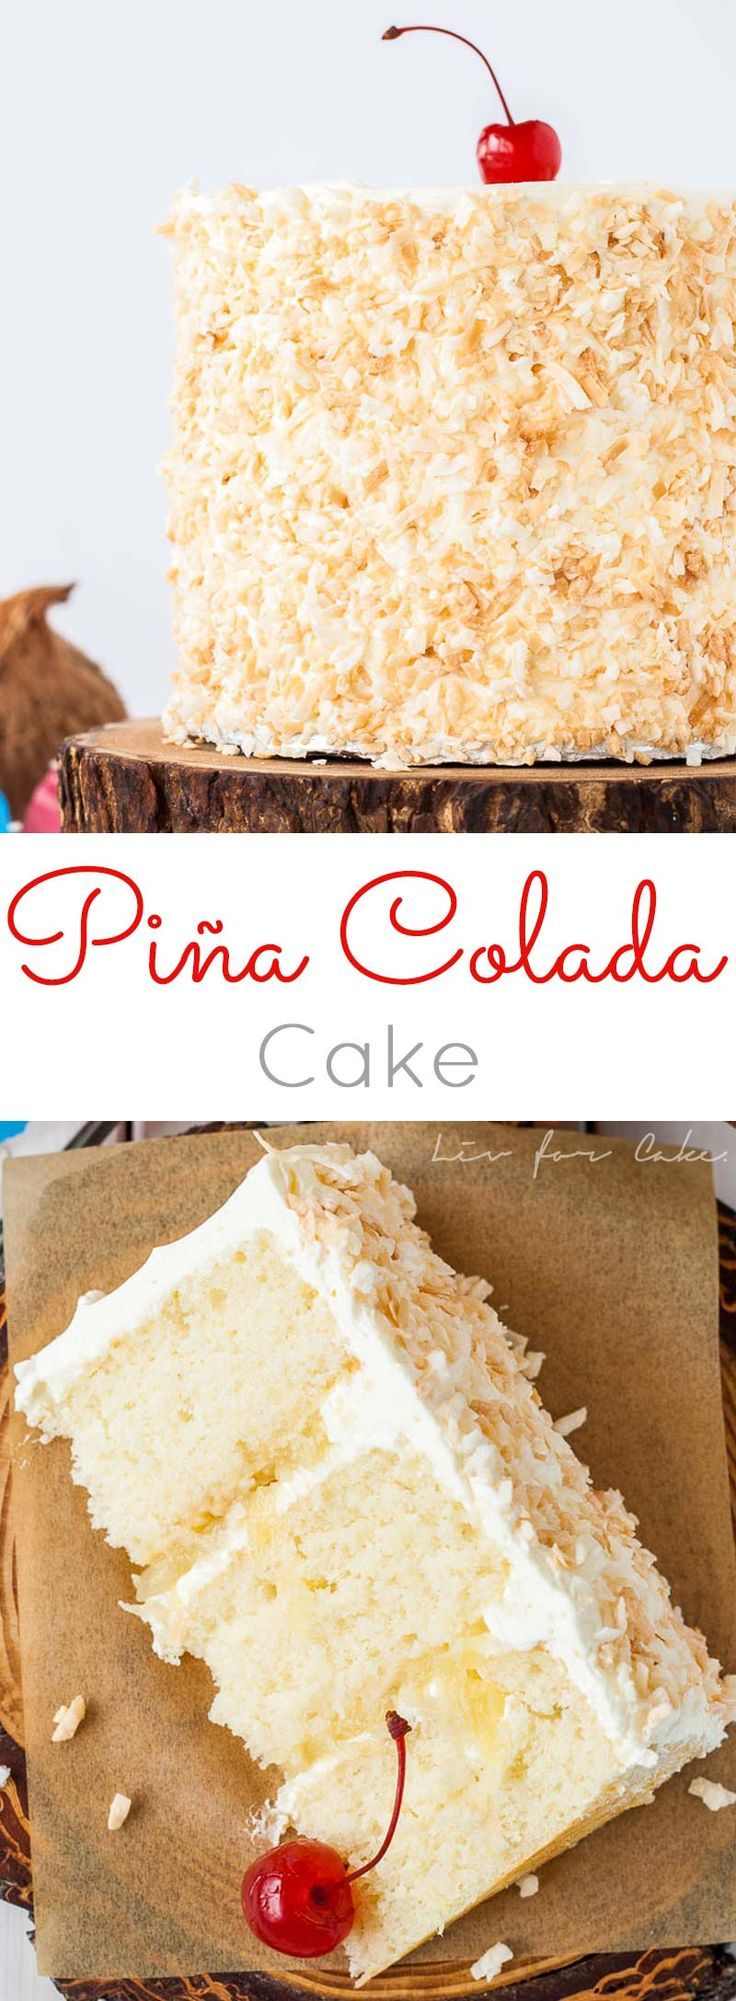 This Piña Colada Cake turns your favourite tropical cocktail into one delicious dessert! Rum flavoured cake and frosting paired with pineapple filling and toasted coconut.   http://livforcake.com